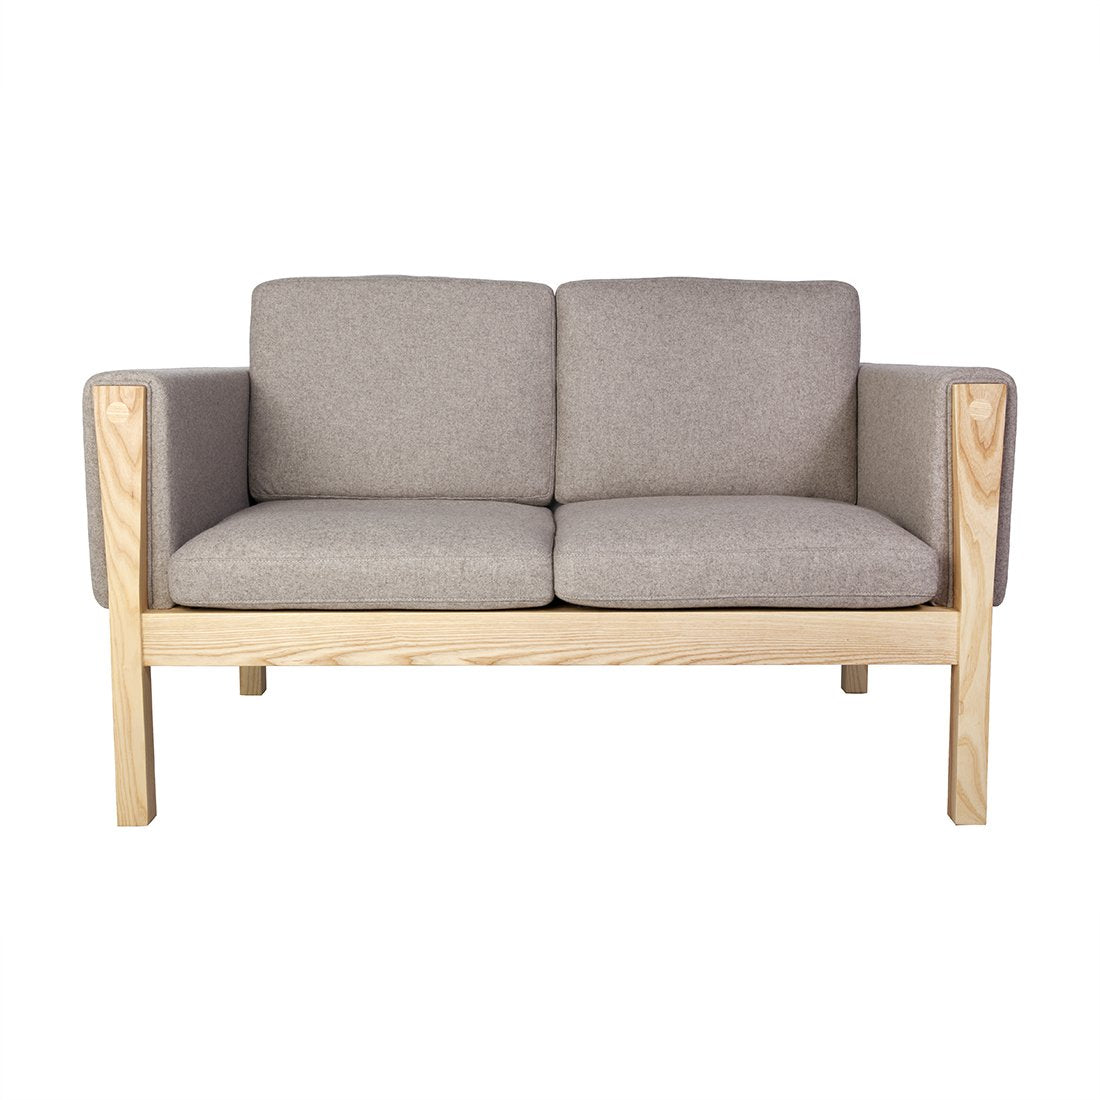 [FB8129WHEAT2] CH162 Sofa SALE